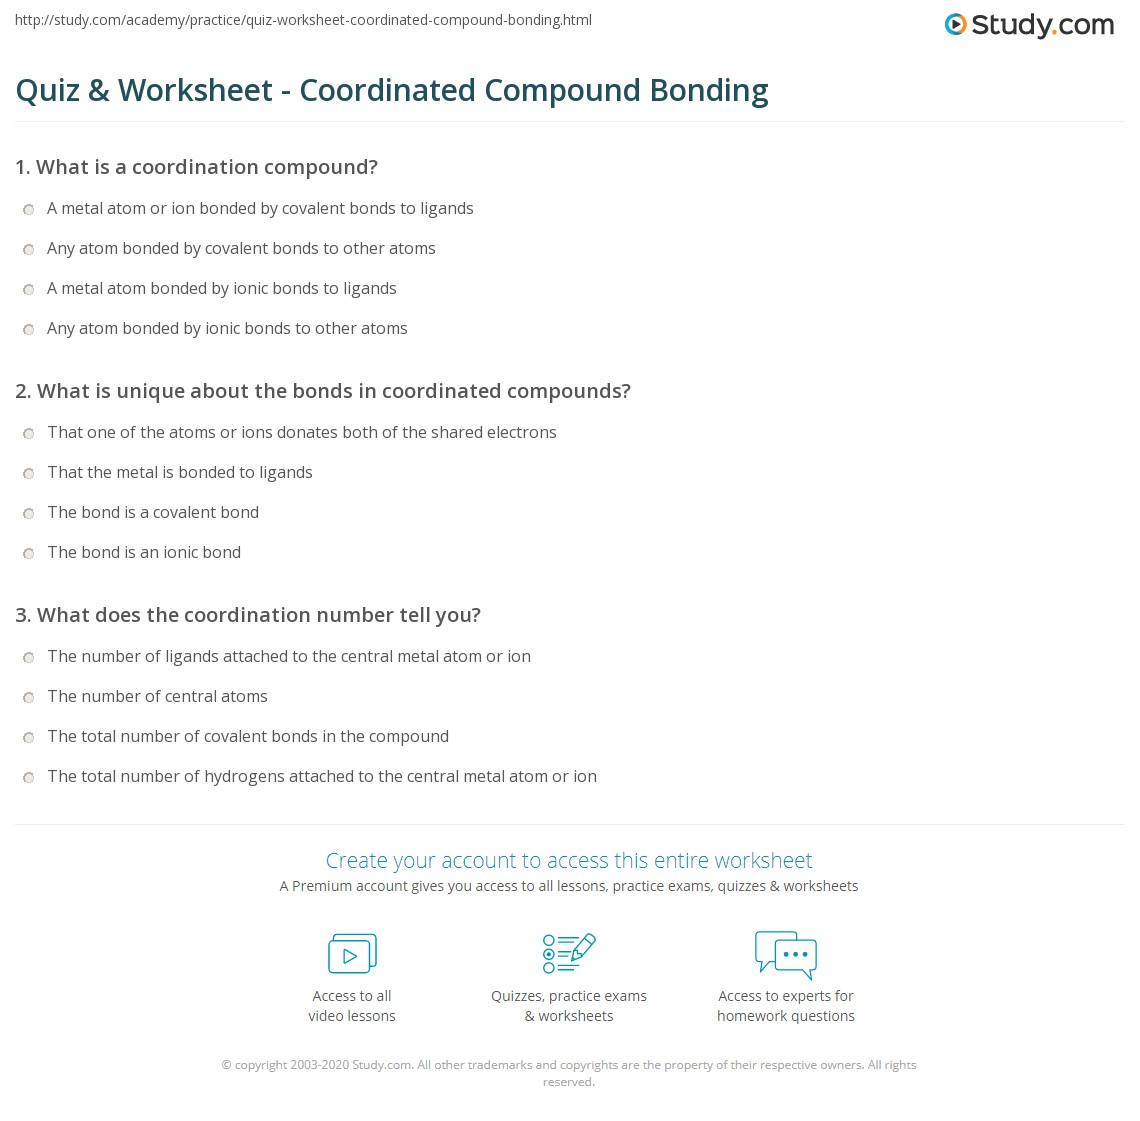 Print Coordination Chemistry: Bonding in Coordinated Compounds Worksheet